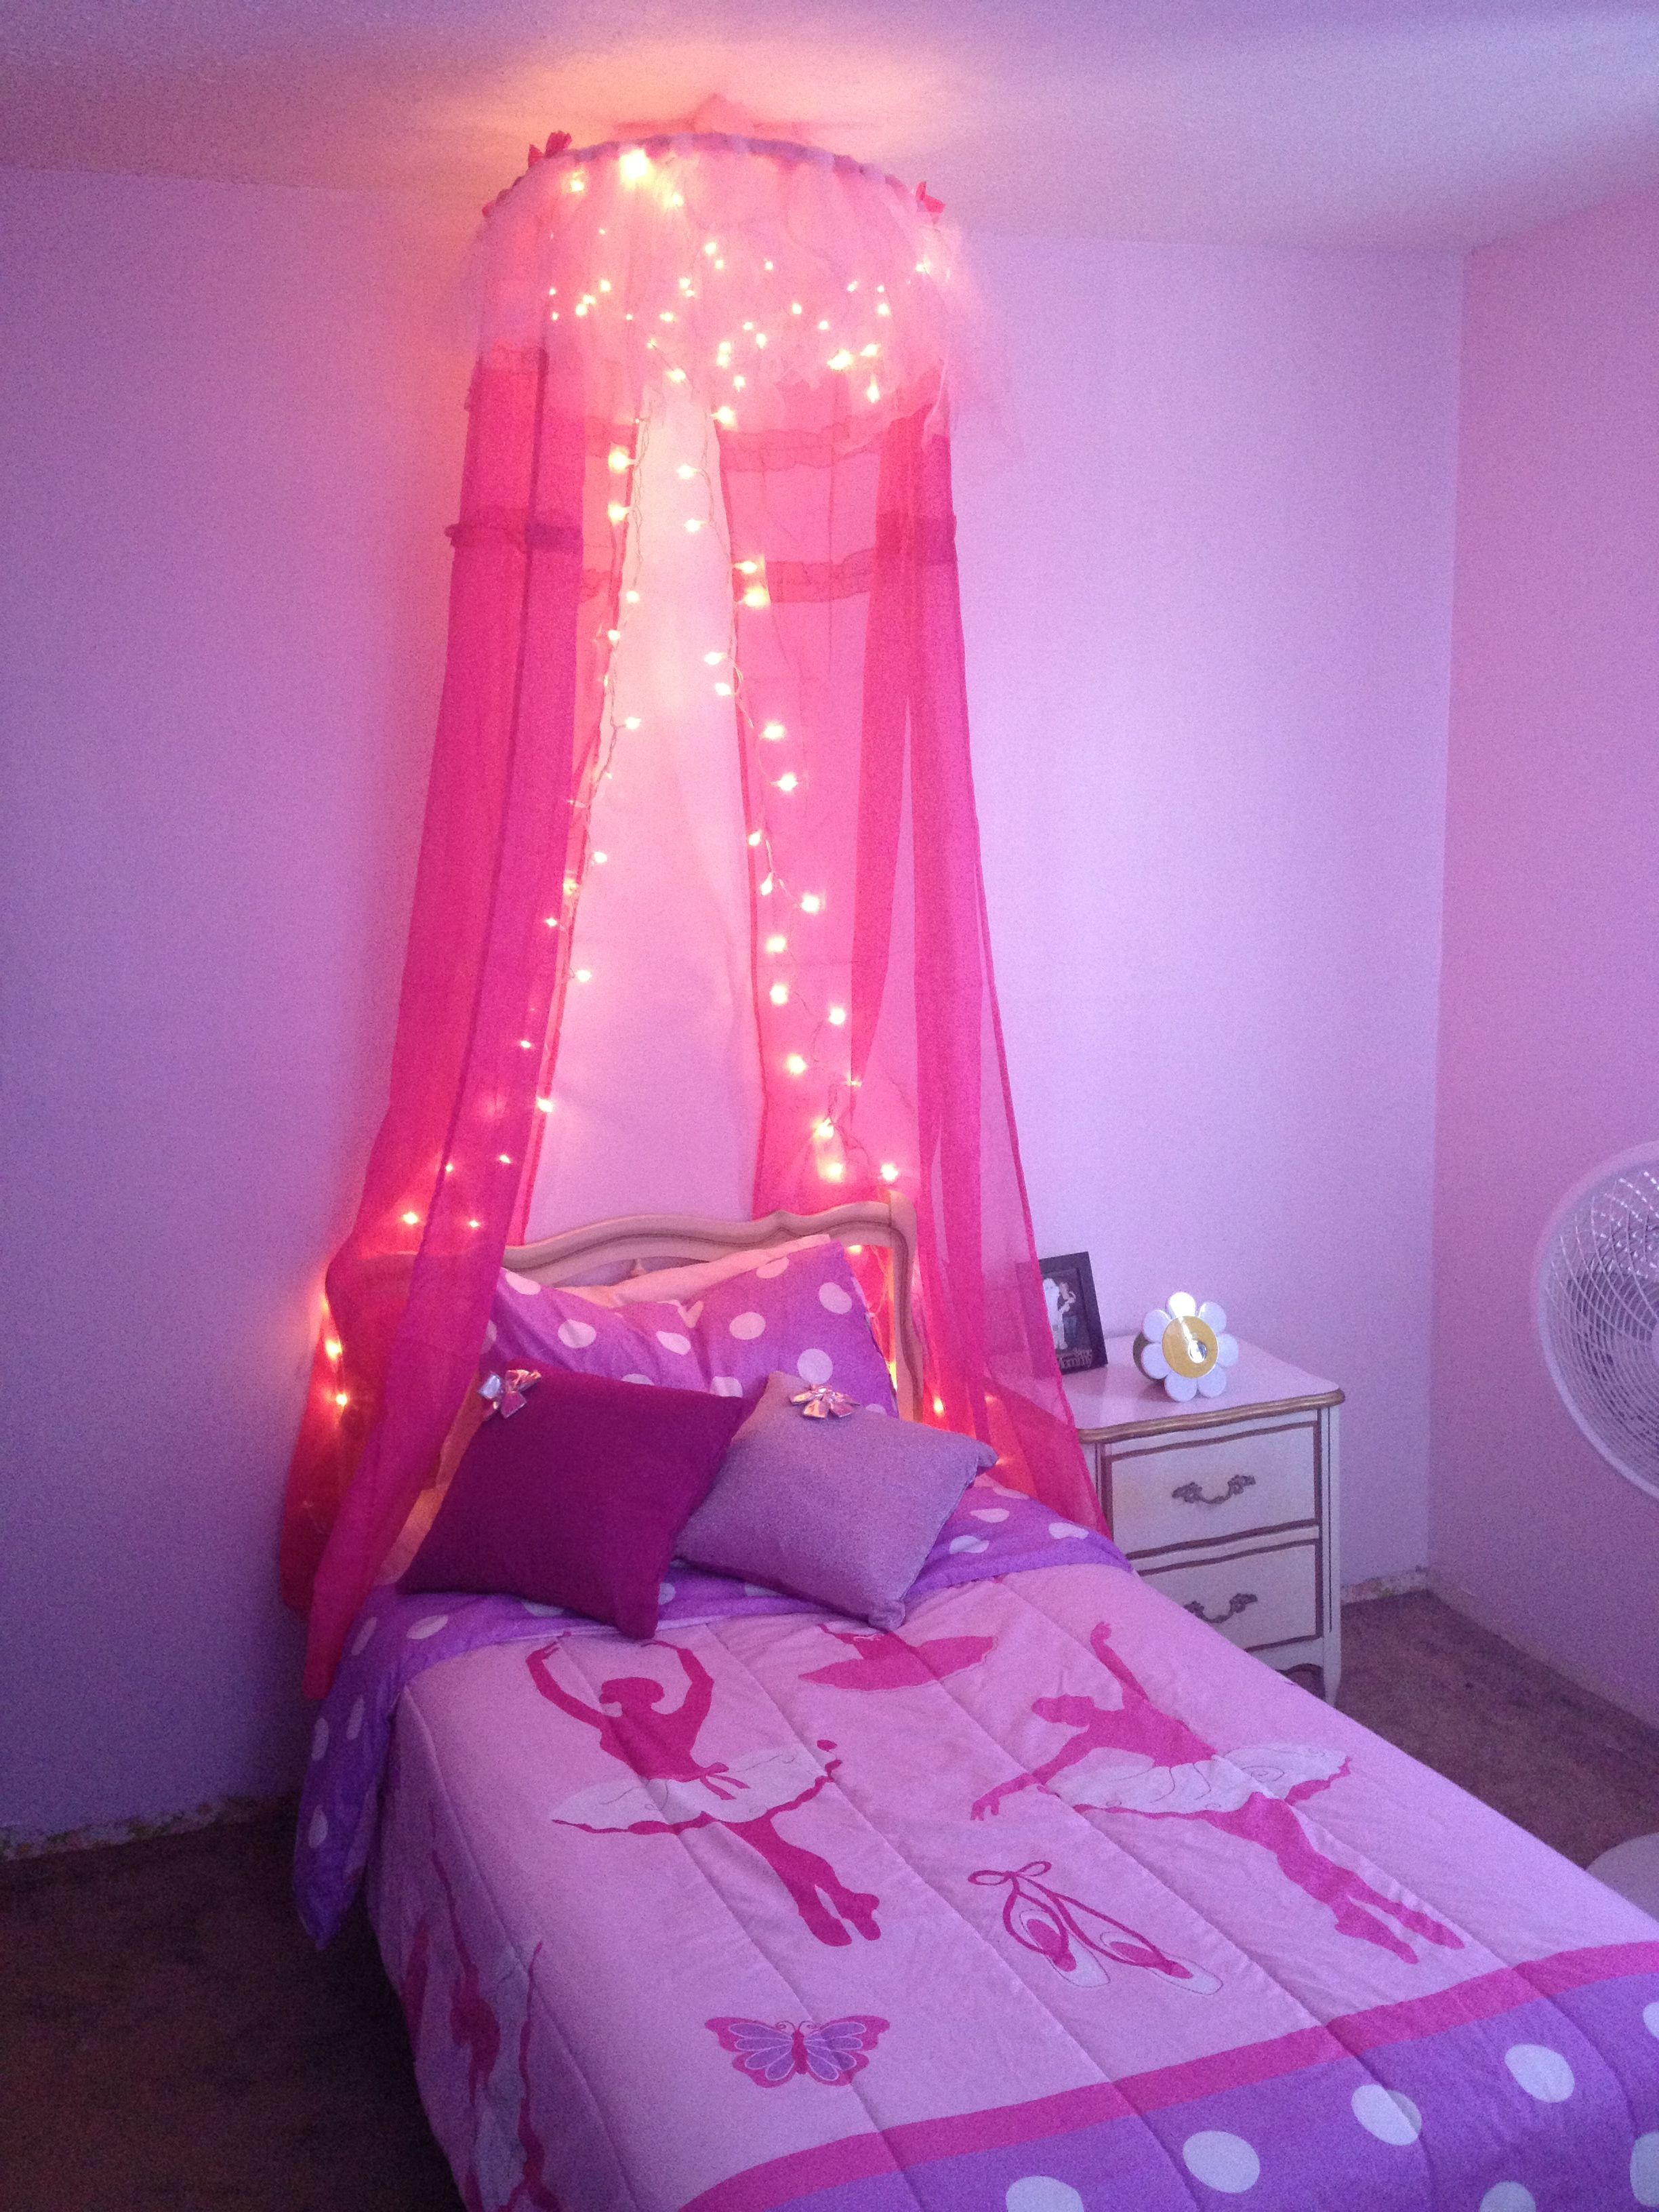 Bed Canopy Made From A Hula Hoop Tule And Dollar Store Curtains And Lights Love It So Does My Litt Little Girl Canopy Bed Girls Bed Canopy Girls Room Decor